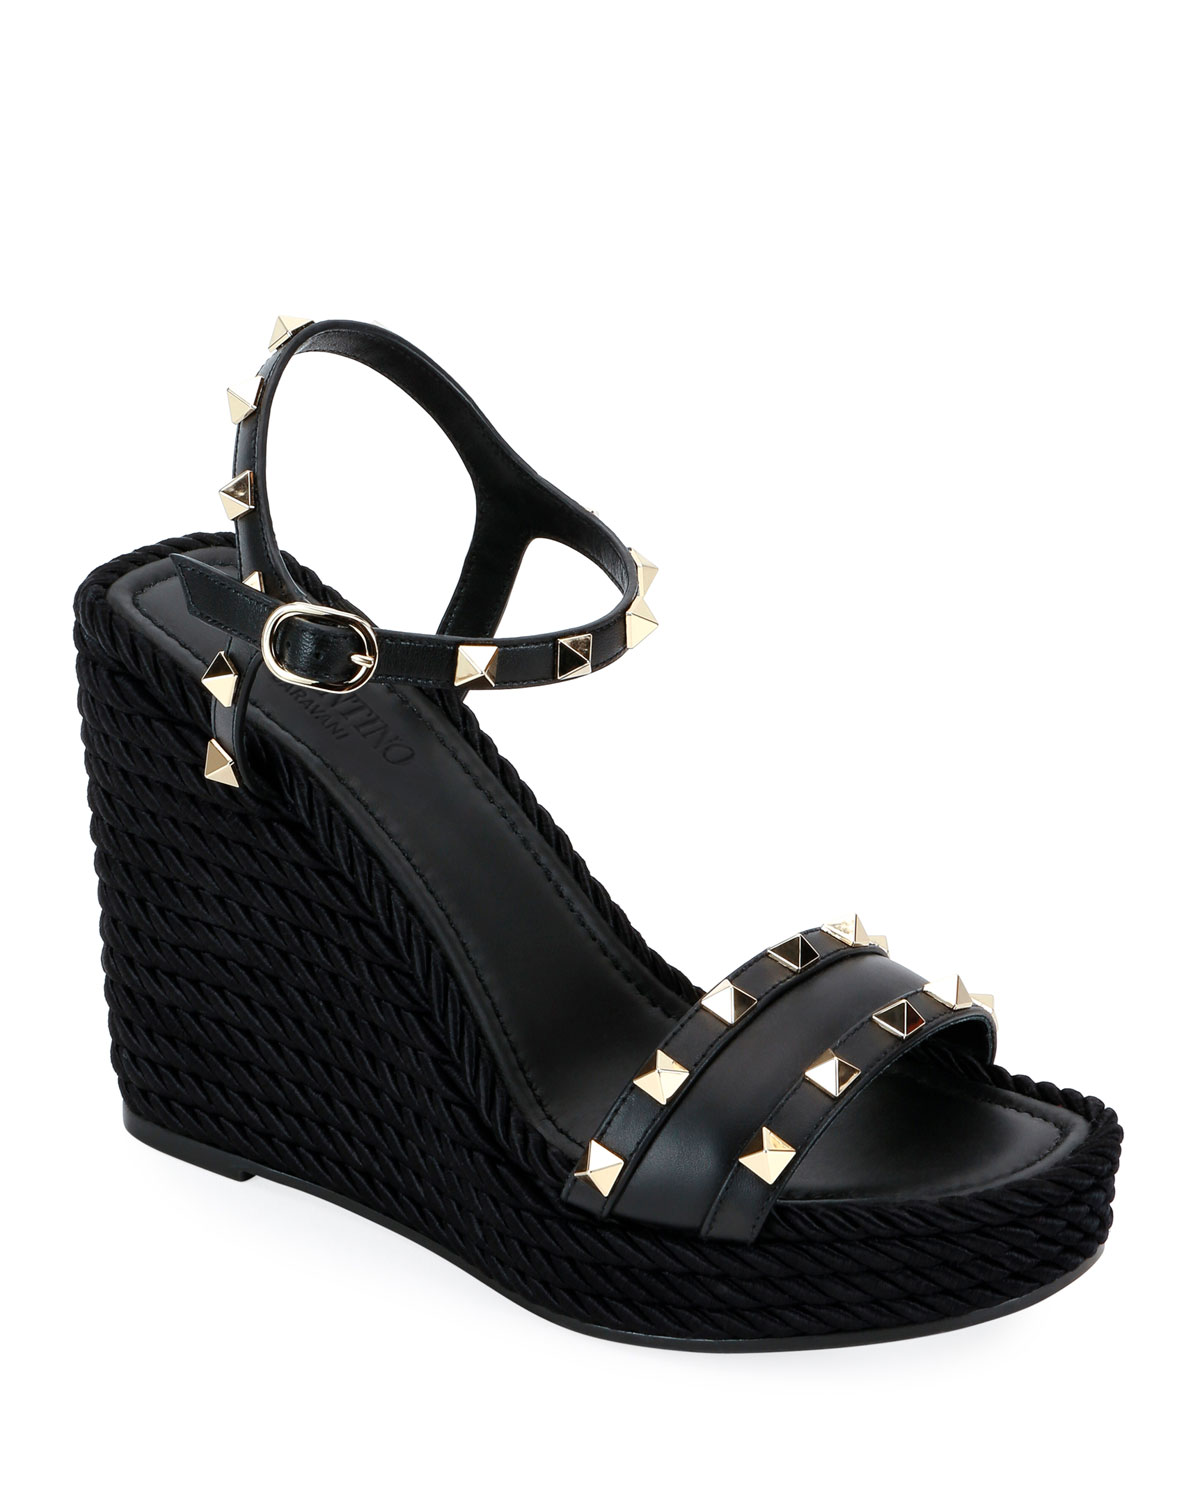 326cf187ff5 Rockstud Leather Wedge Sandals